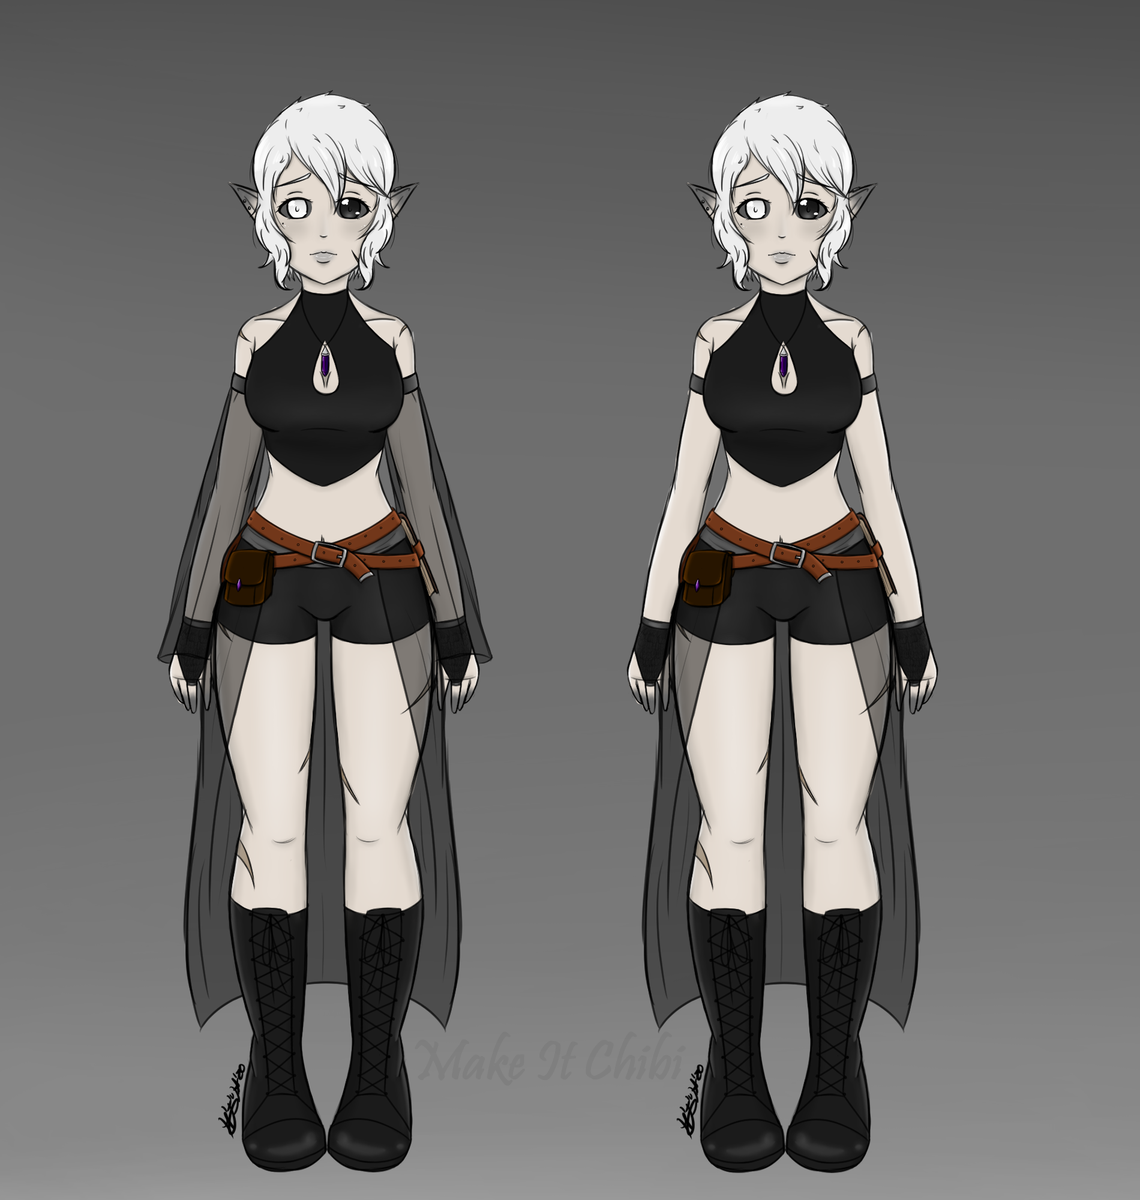 Rosalind's Desert Outfit Ver. Since the party is at a city in the middle of the desert, she needed an outfit change for this arc.#ArtistOnTwitter #dungeonsanddragons #DnDcharacter #OC #dnd #dnd5e #dndart #digitalart #sorcerer #art #artistsontwitter #elfpic.twitter.com/uhDJ2X7Iur